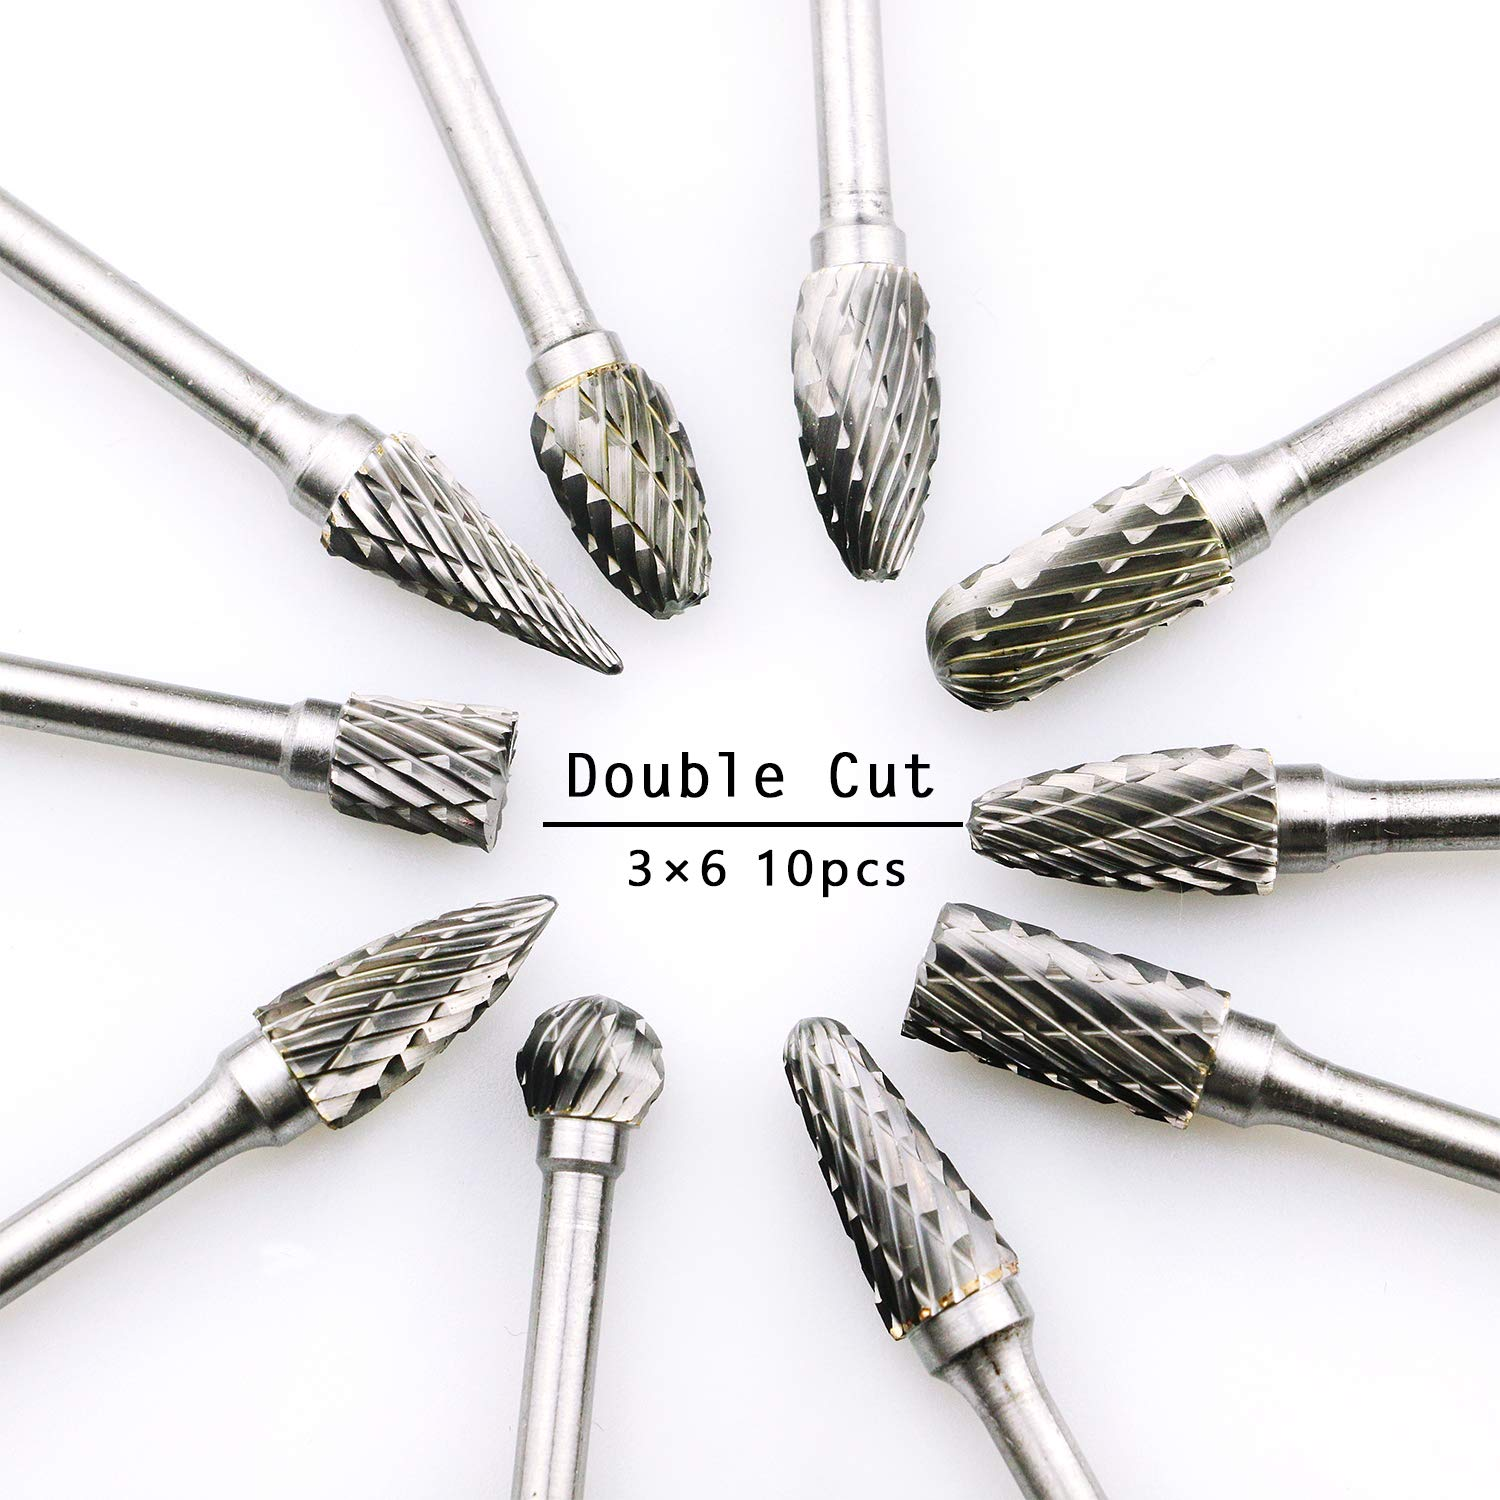 "DLtools 10pcs Double Cut Tungsten Carbide Rotary Burr Set, Metal Carving Drilling Polishing Bits with 1/8""(3.175mm) Shank and 1/4""(6.35mm) Head Dia for Die Grinder"